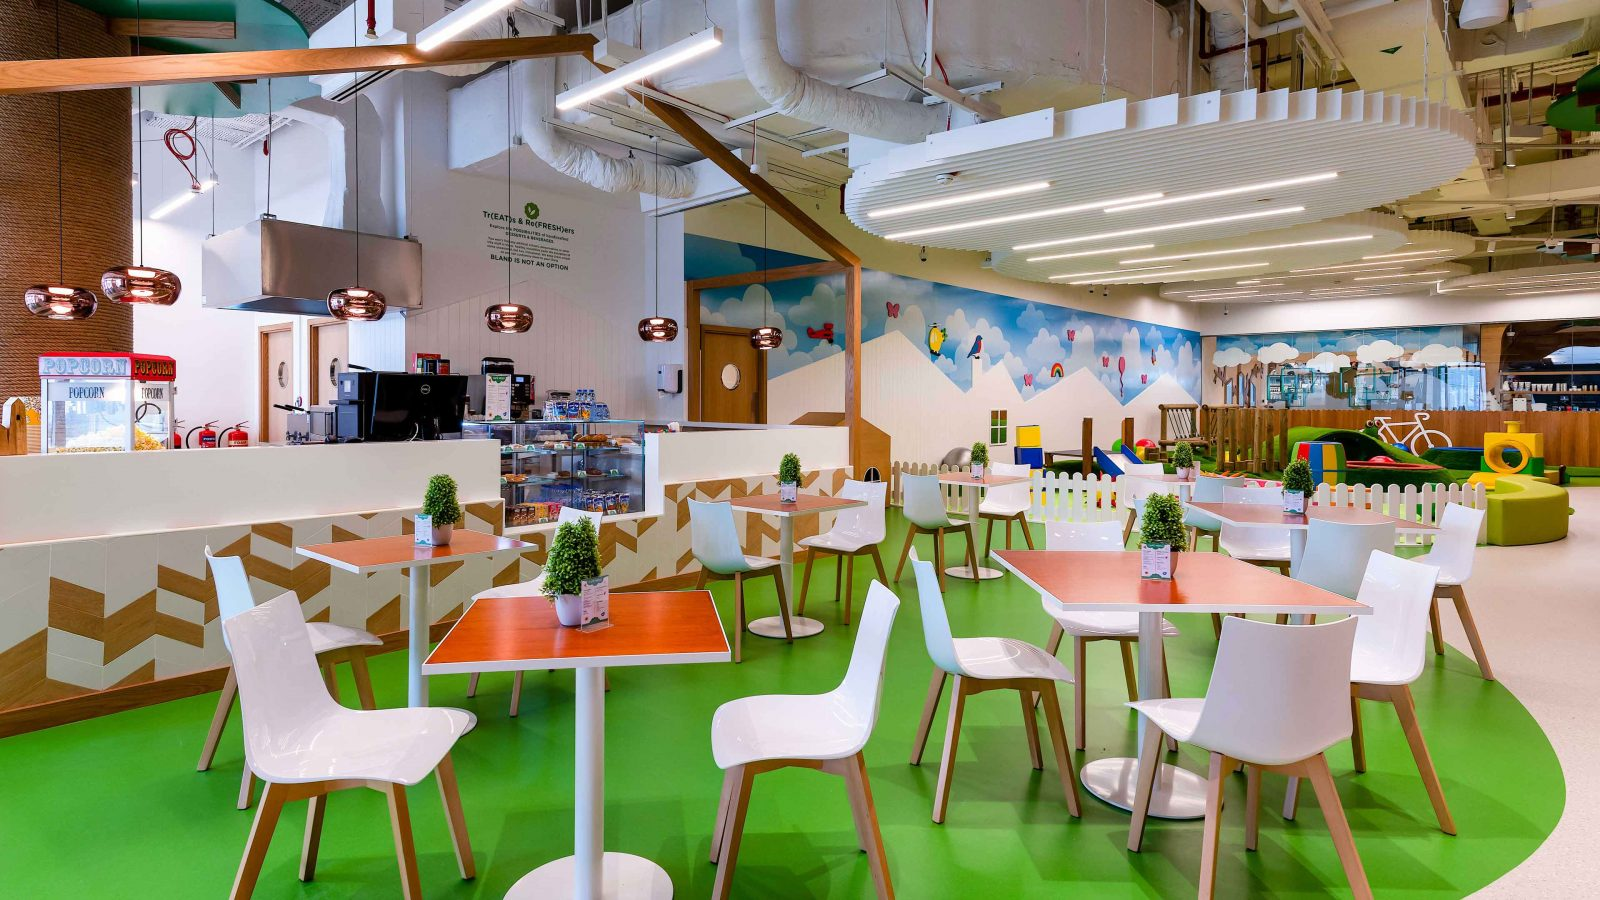 Architectural Lighting Design Indoor Children's Playground Cafe Feature Pendants Linear Ceiling Lights Fun Colourful Interior Studio N